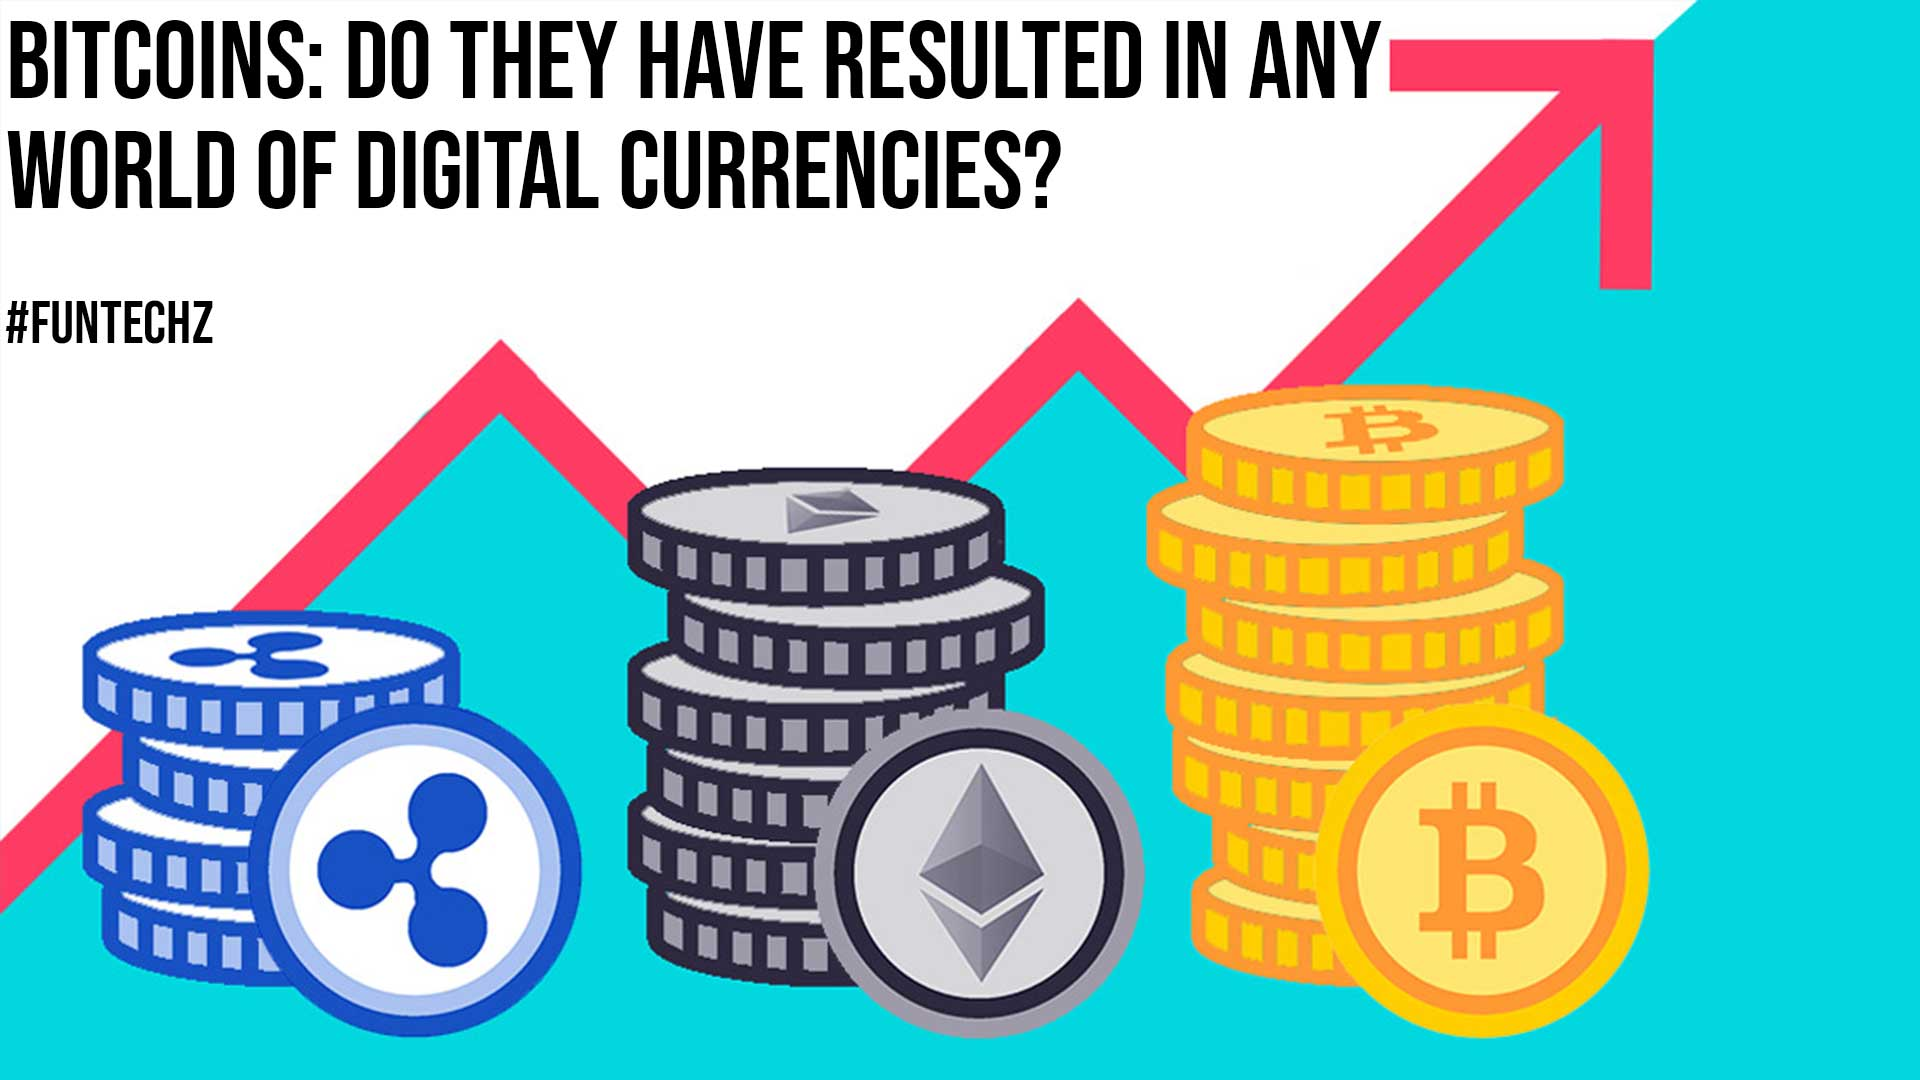 Bitcoins Do they have Resulted in Any World of Digital Currencies